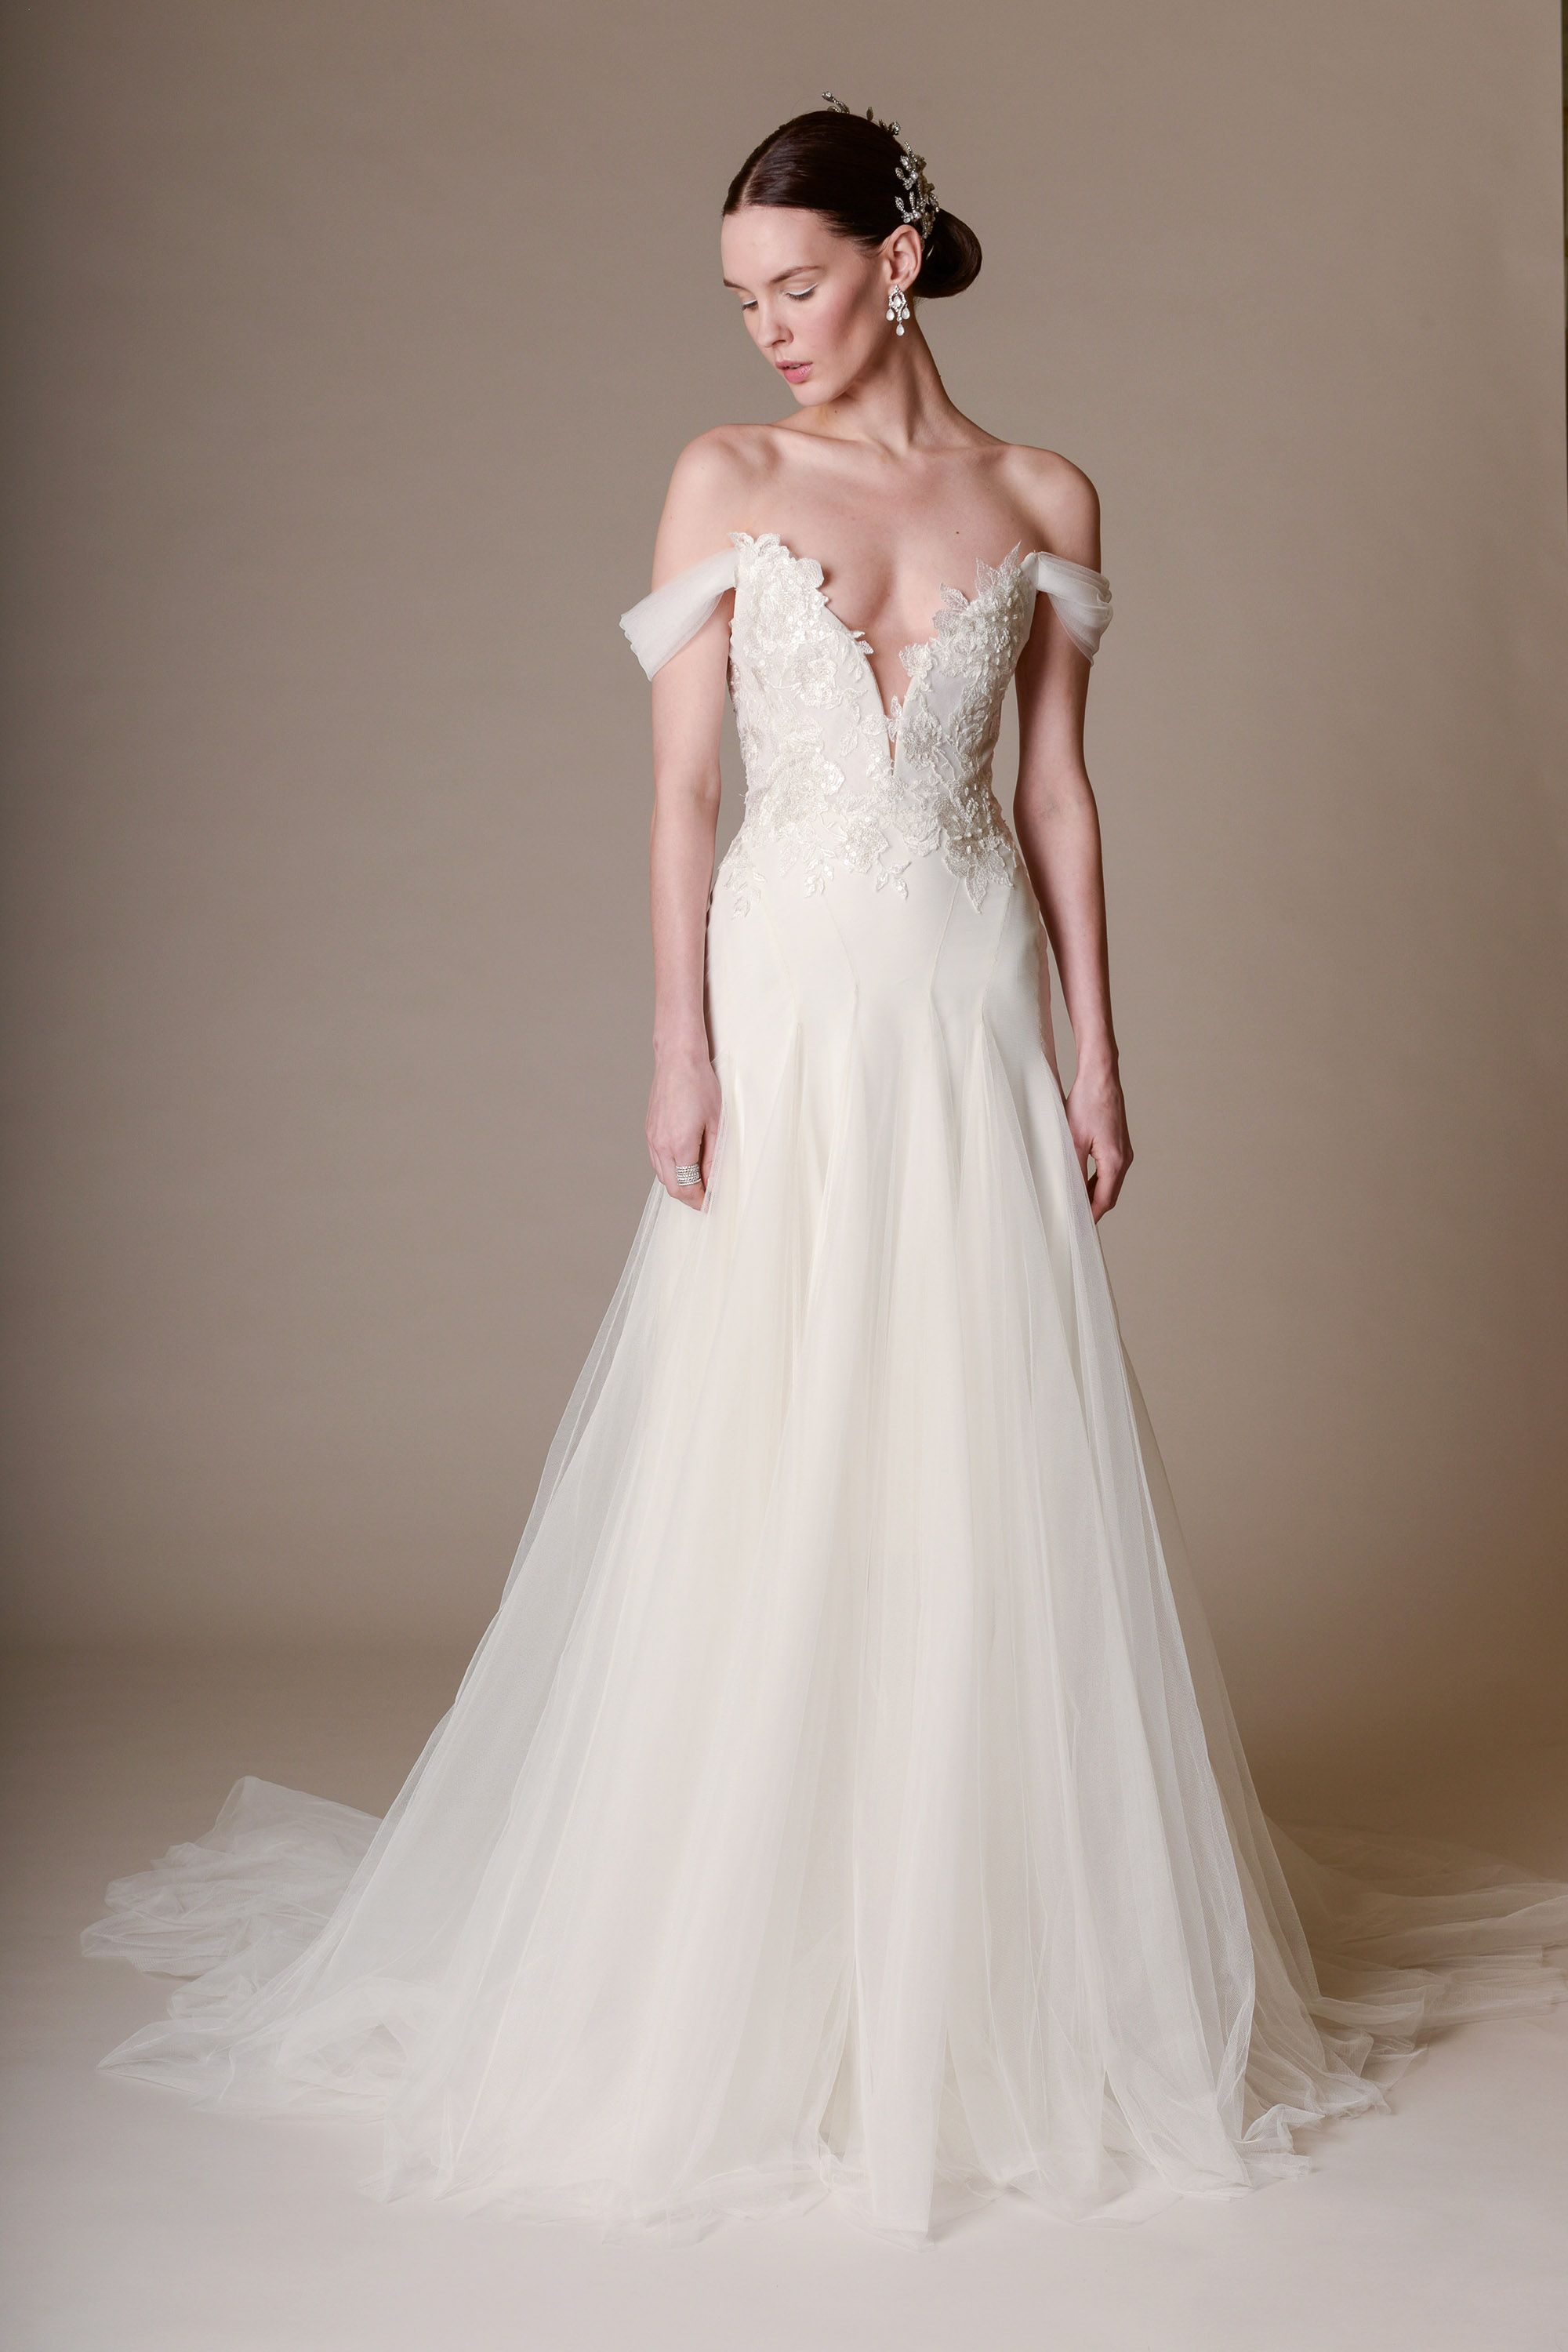 Spring 2016 Wedding Dress Trends | Brides